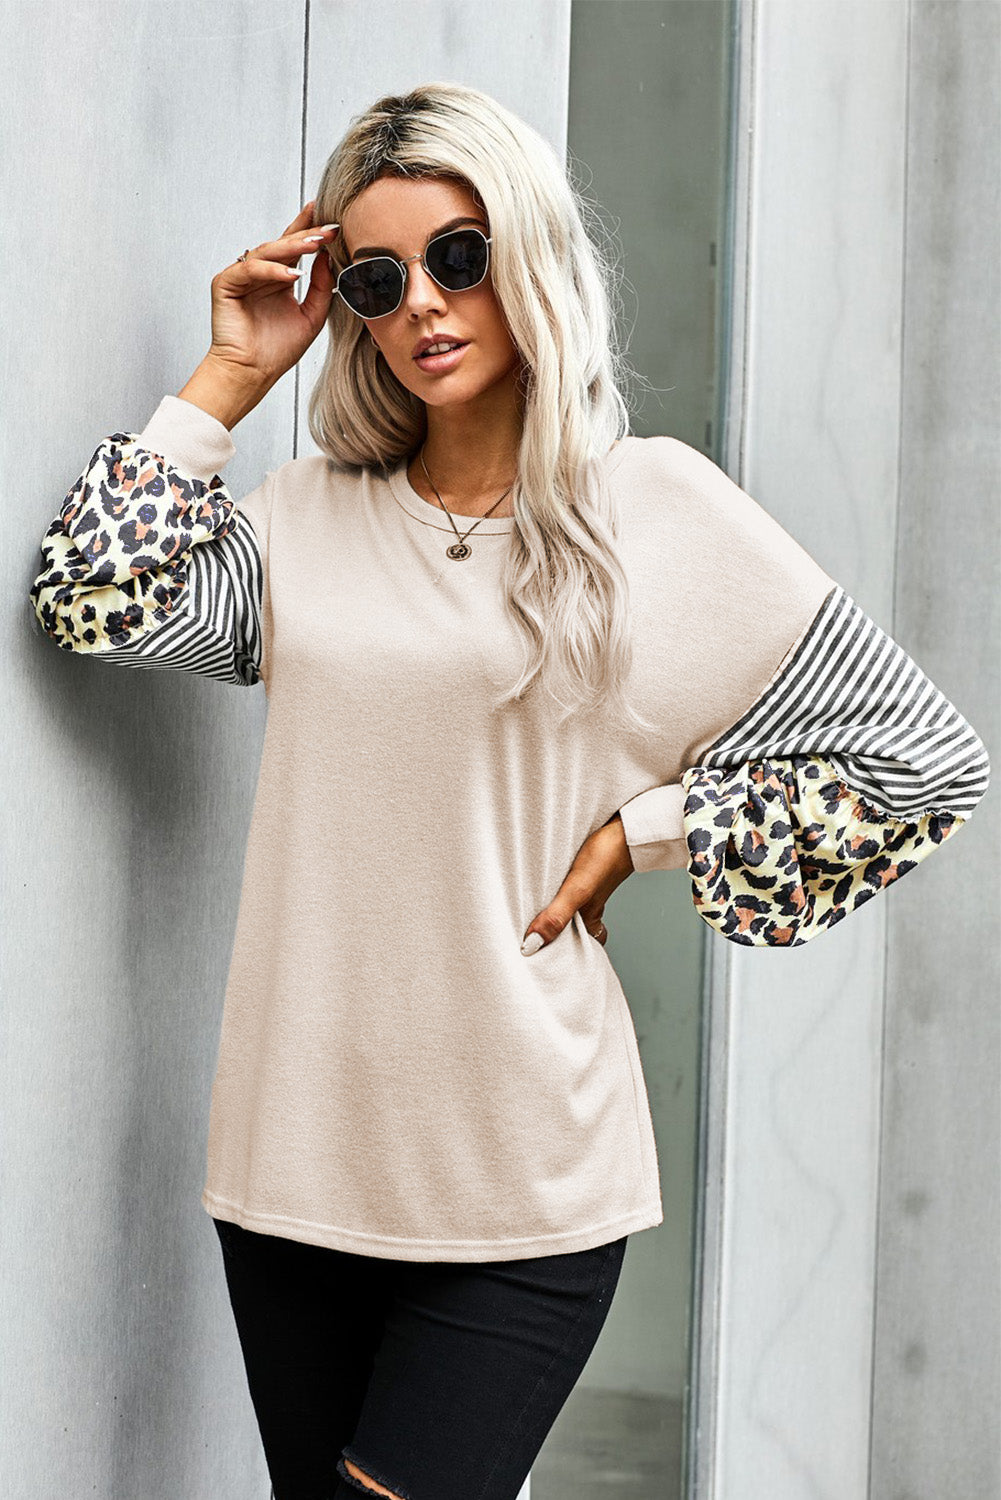 Khaki Leopard Striped Print Sleeve Colorblock Top Long Sleeve Tops Discount Designer Fashion Clothes Shoes Bags Women Men Kids Children Black Owned Business